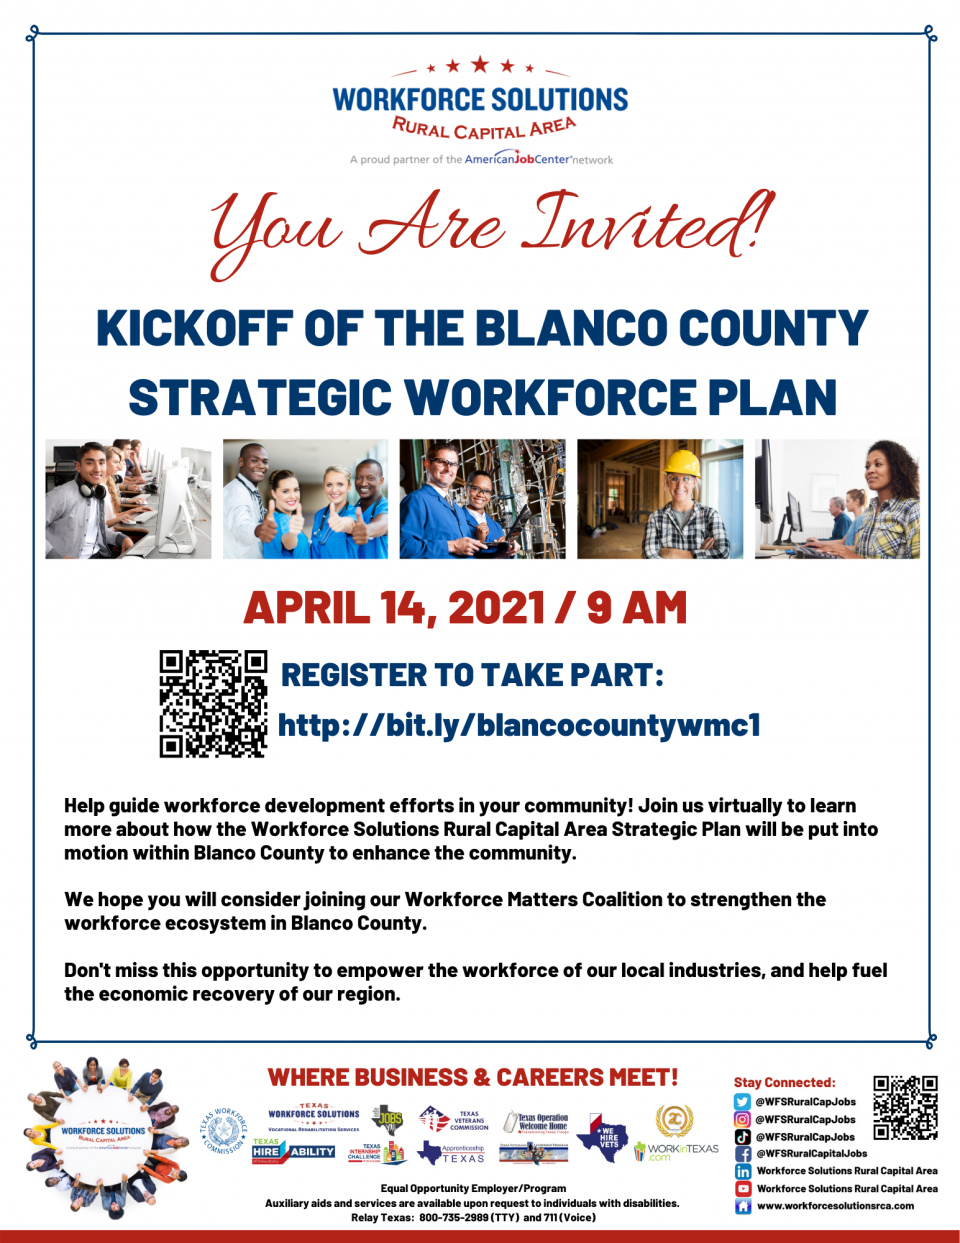 Celebrate the Kickoff of the Blanco County Strategic Workforce Plan